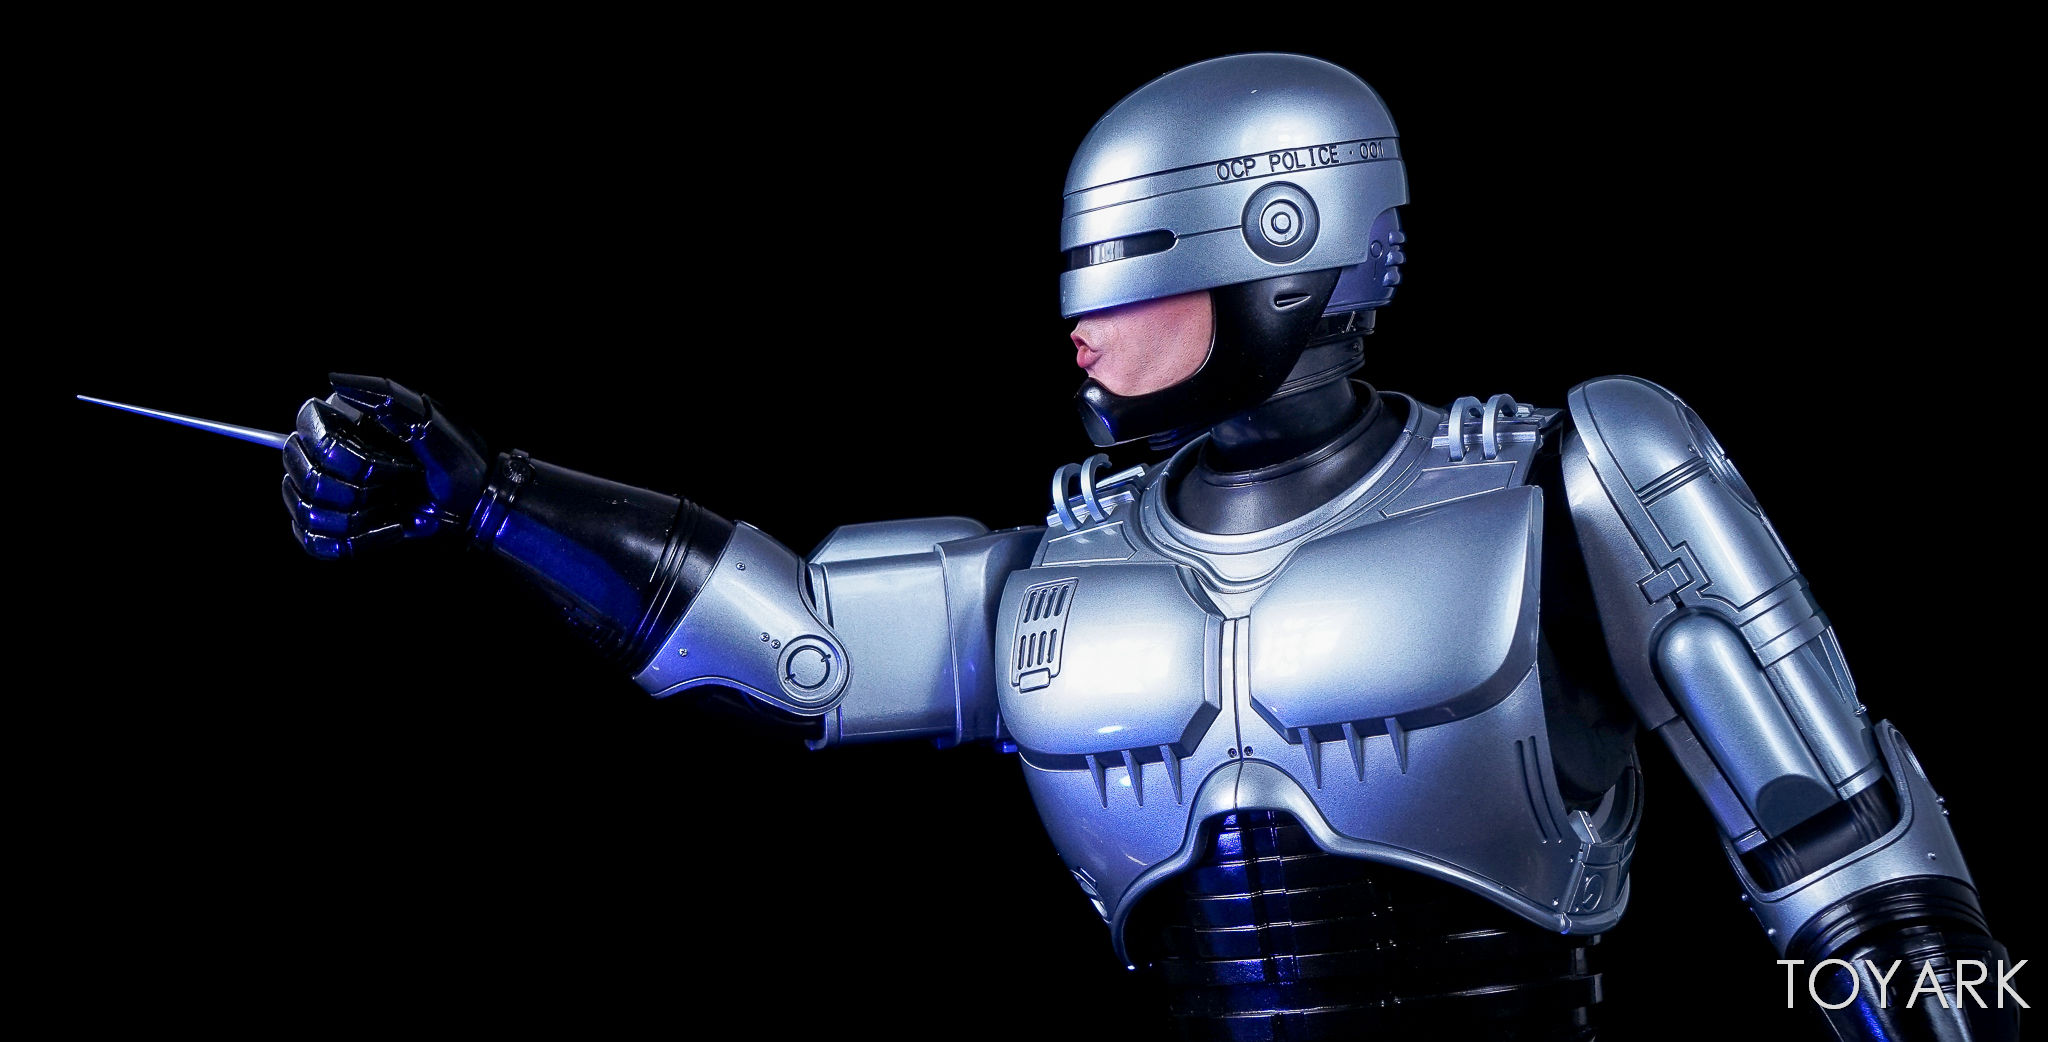 http://news.toyark.com/wp-content/uploads/sites/4/2017/07/Enterbay-Robocop-3-HD-Masterpiece-040.jpg